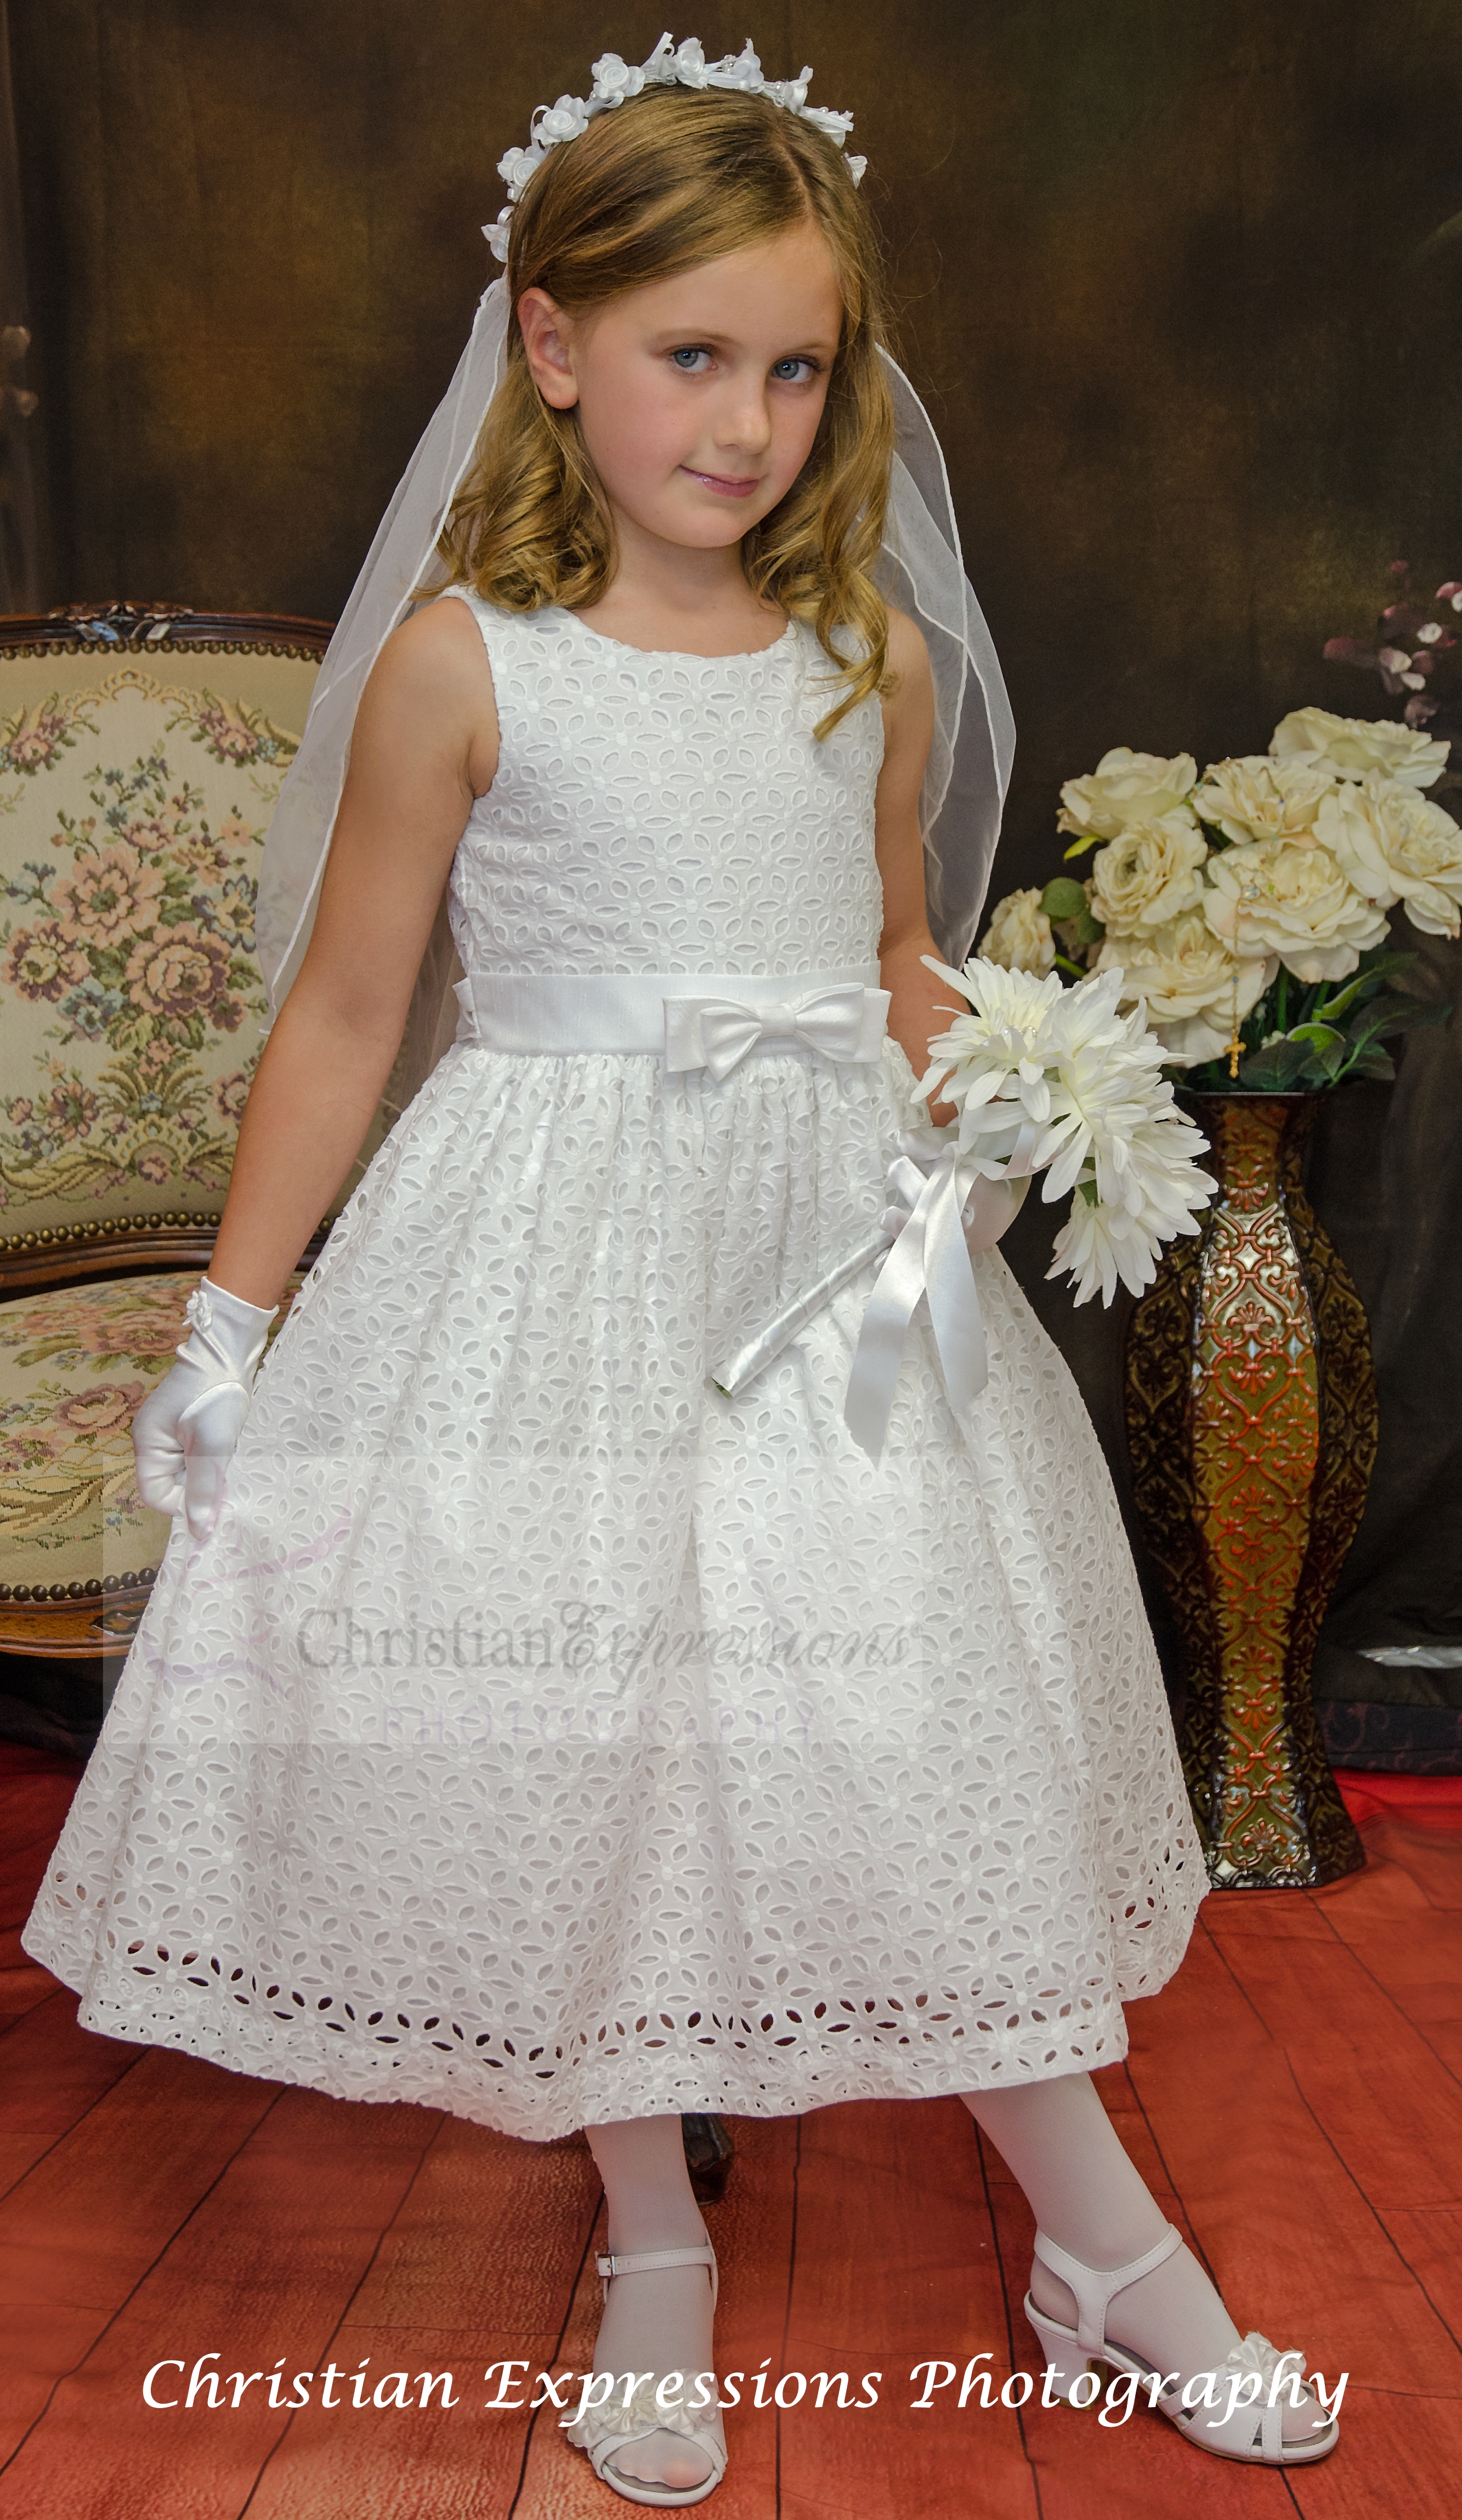 Sleeveless Embroidered Cotton First  munion Dress With Bow Accent On Waist on flower crown headband